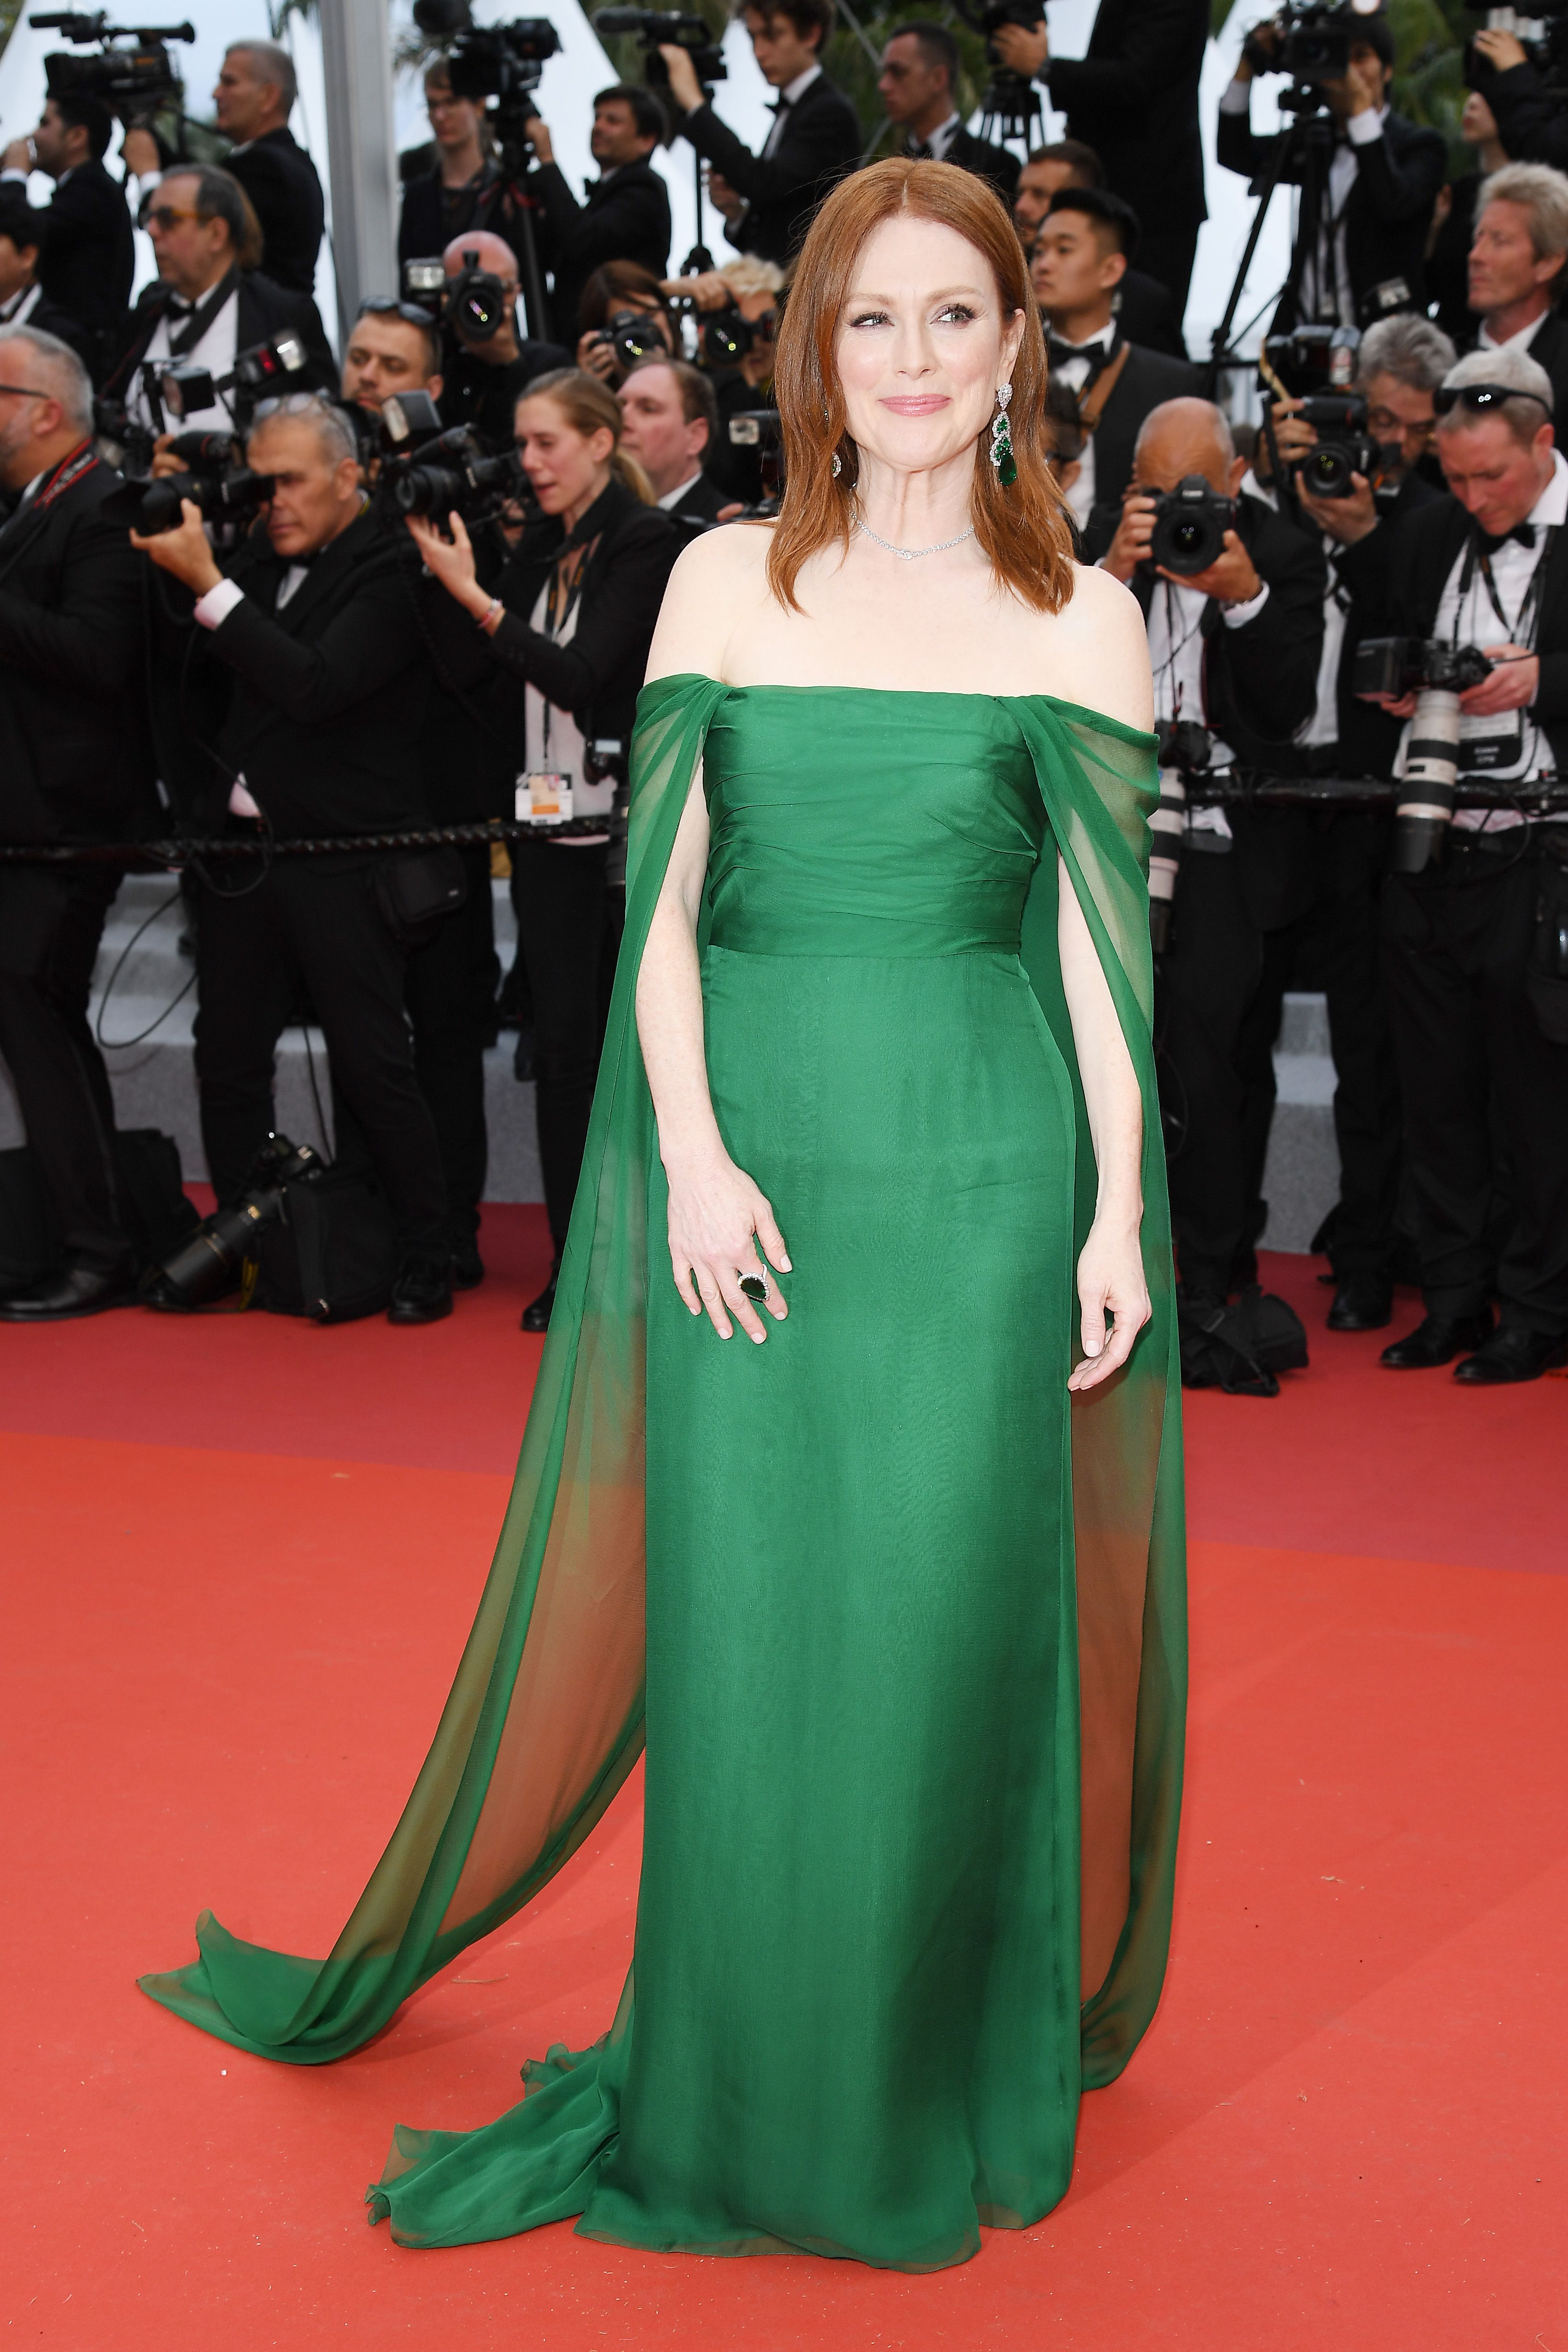 Julianne Moore At the opening ceremony of the Cannes Film Festival and premiere of The Dead Don't Die .